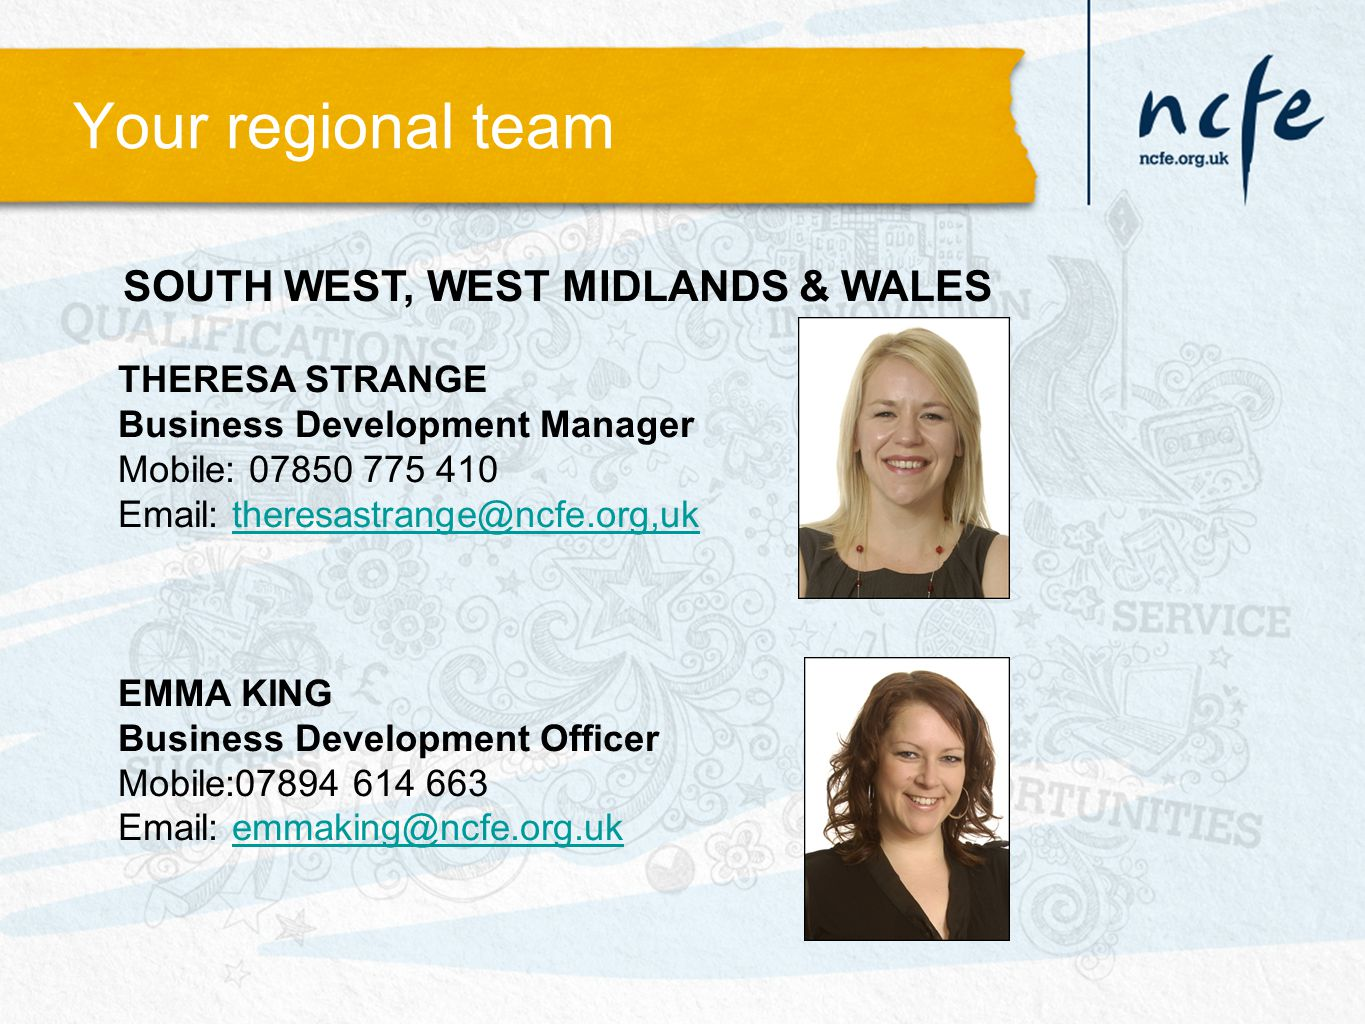 Your regional team SOUTH WEST, WEST MIDLANDS & WALES THERESA STRANGE Business Development Manager Mobile: 07850 775 410 Email: theresastrange@ncfe.org,uktheresastrange@ncfe.org,uk EMMA KING Business Development Officer Mobile:07894 614 663 Email: emmaking@ncfe.org.ukemmaking@ncfe.org.uk